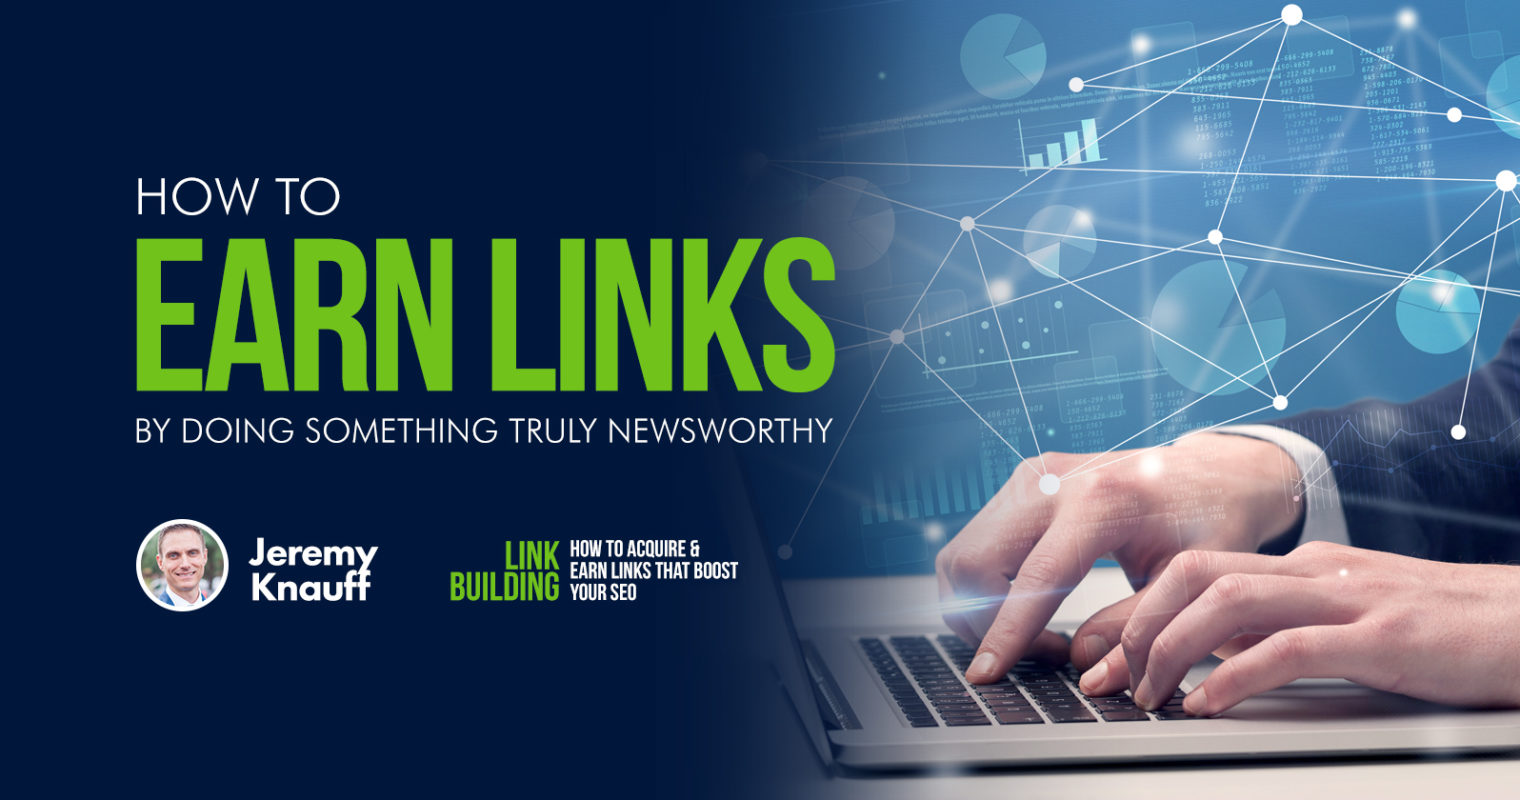 How to Earn Links by Doing Something Truly Newsworthy